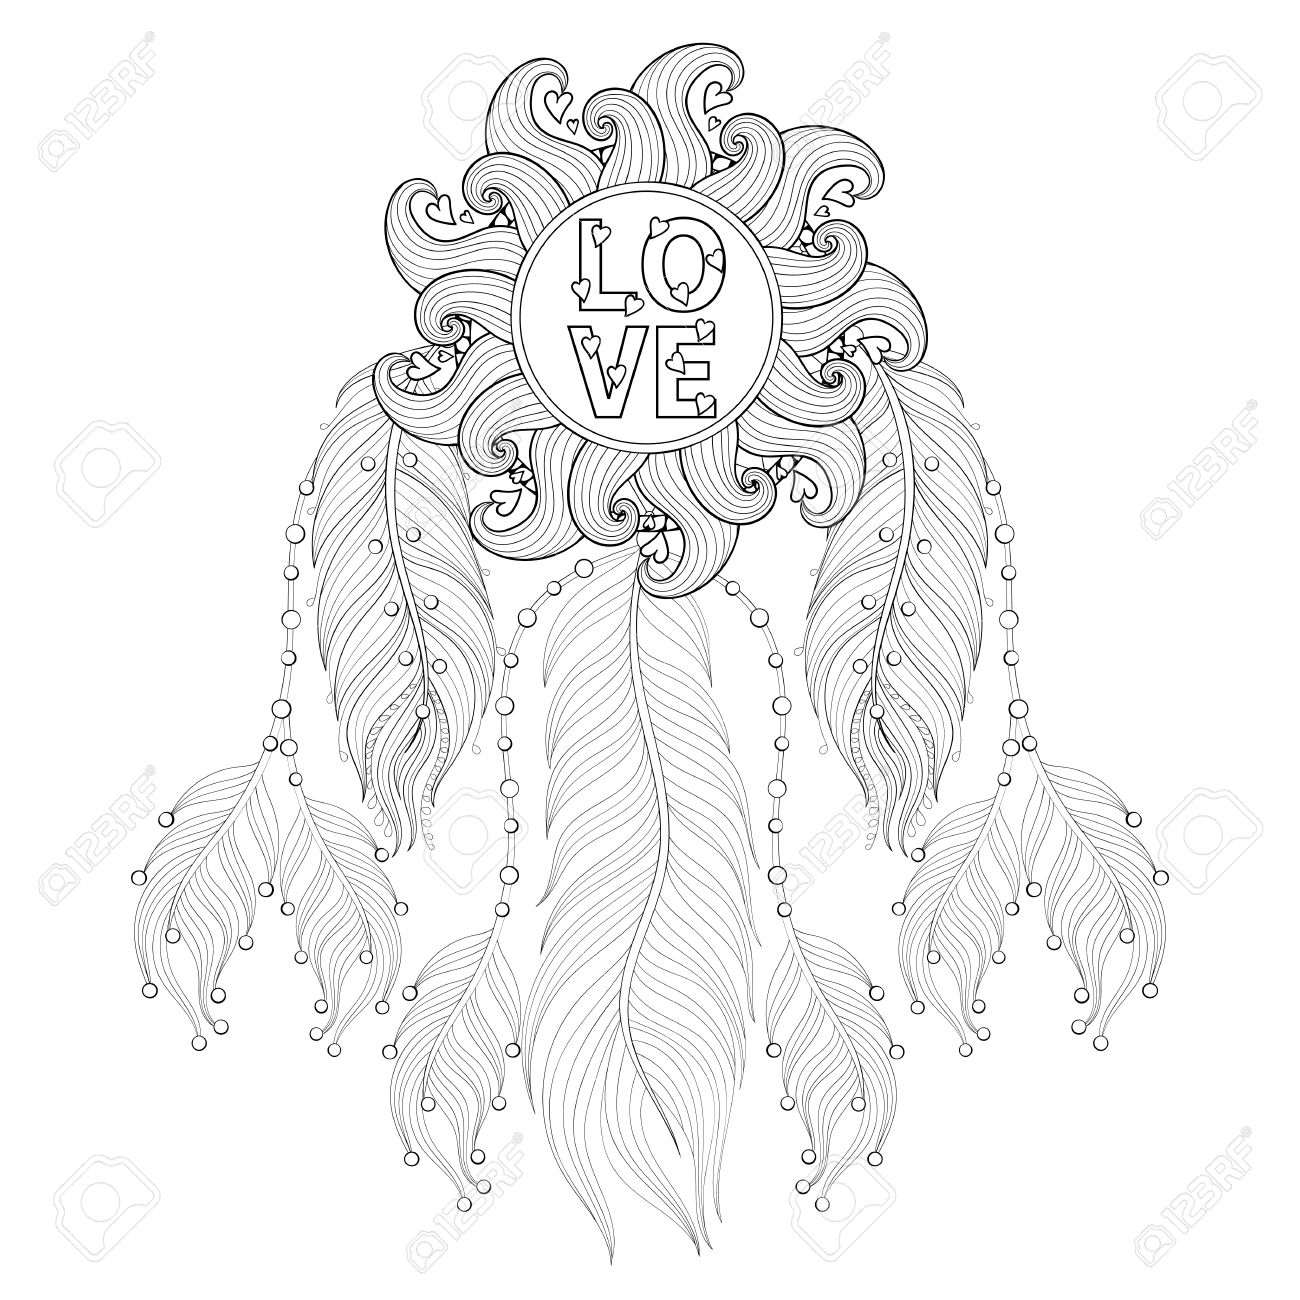 heart dream catcher coloring pages dream catcher colorin pages google search heart coloring dream pages catcher heart